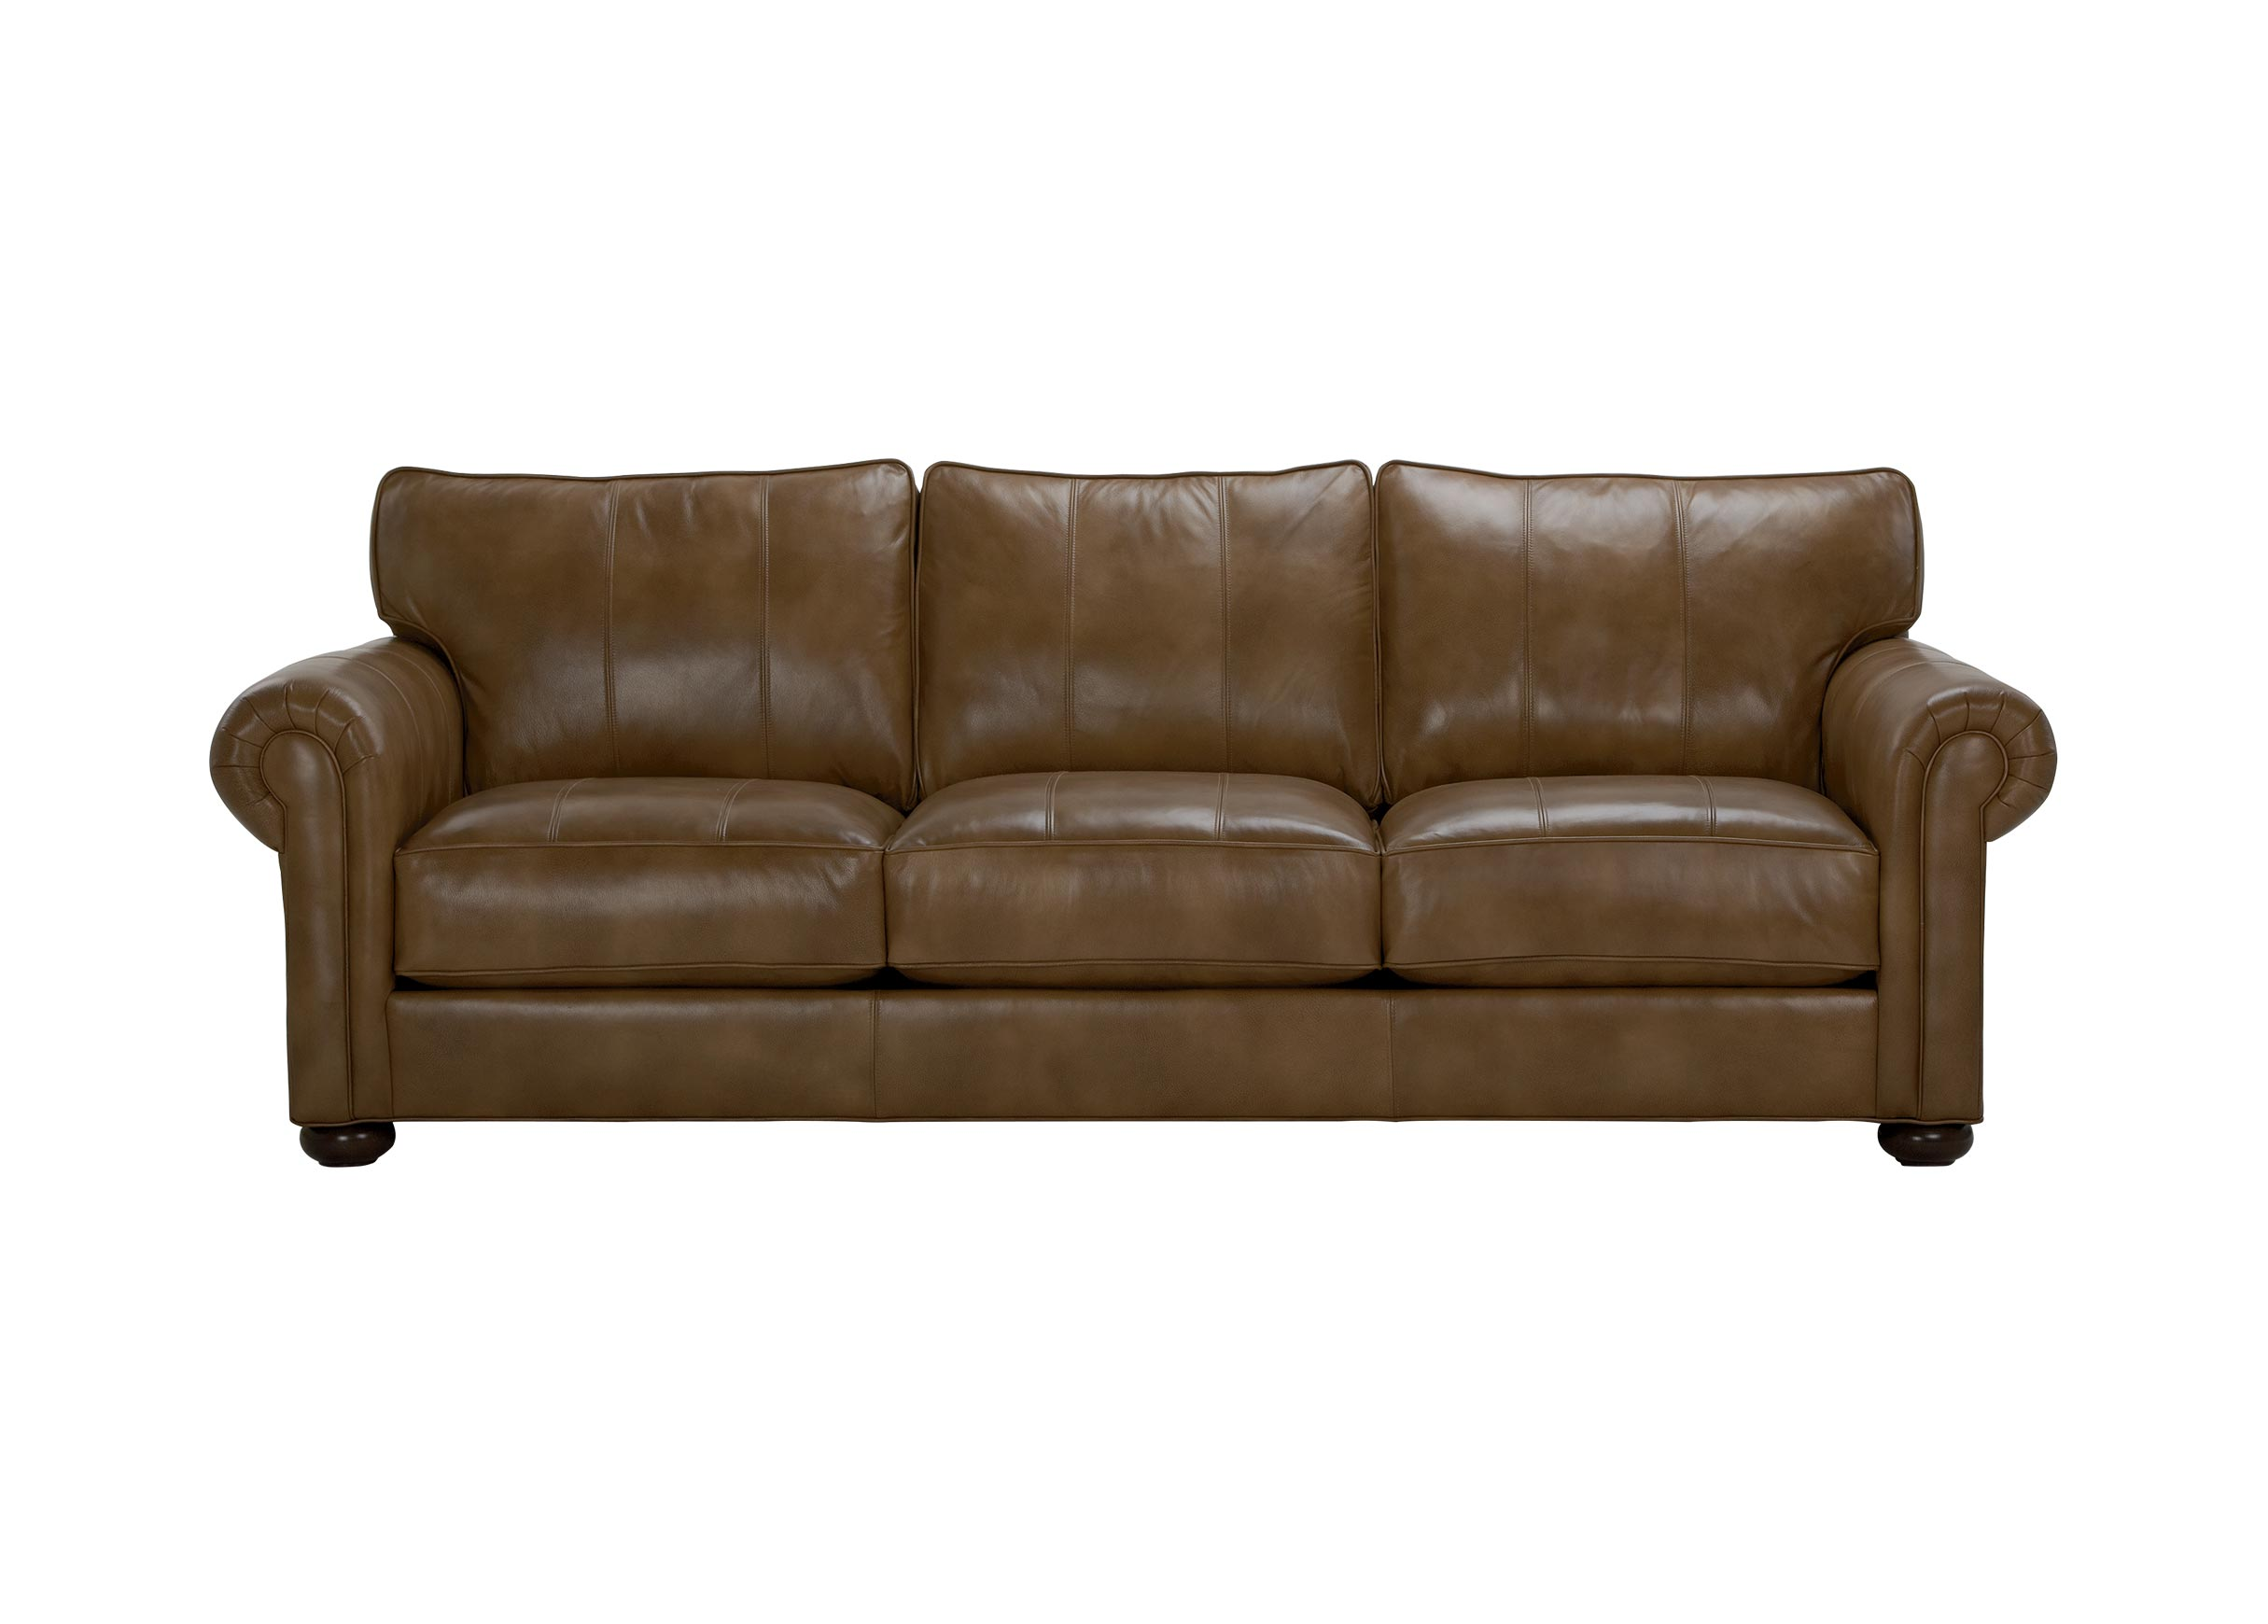 ethan allen sofas price of sofa set in kerala richmond leather and loveseats